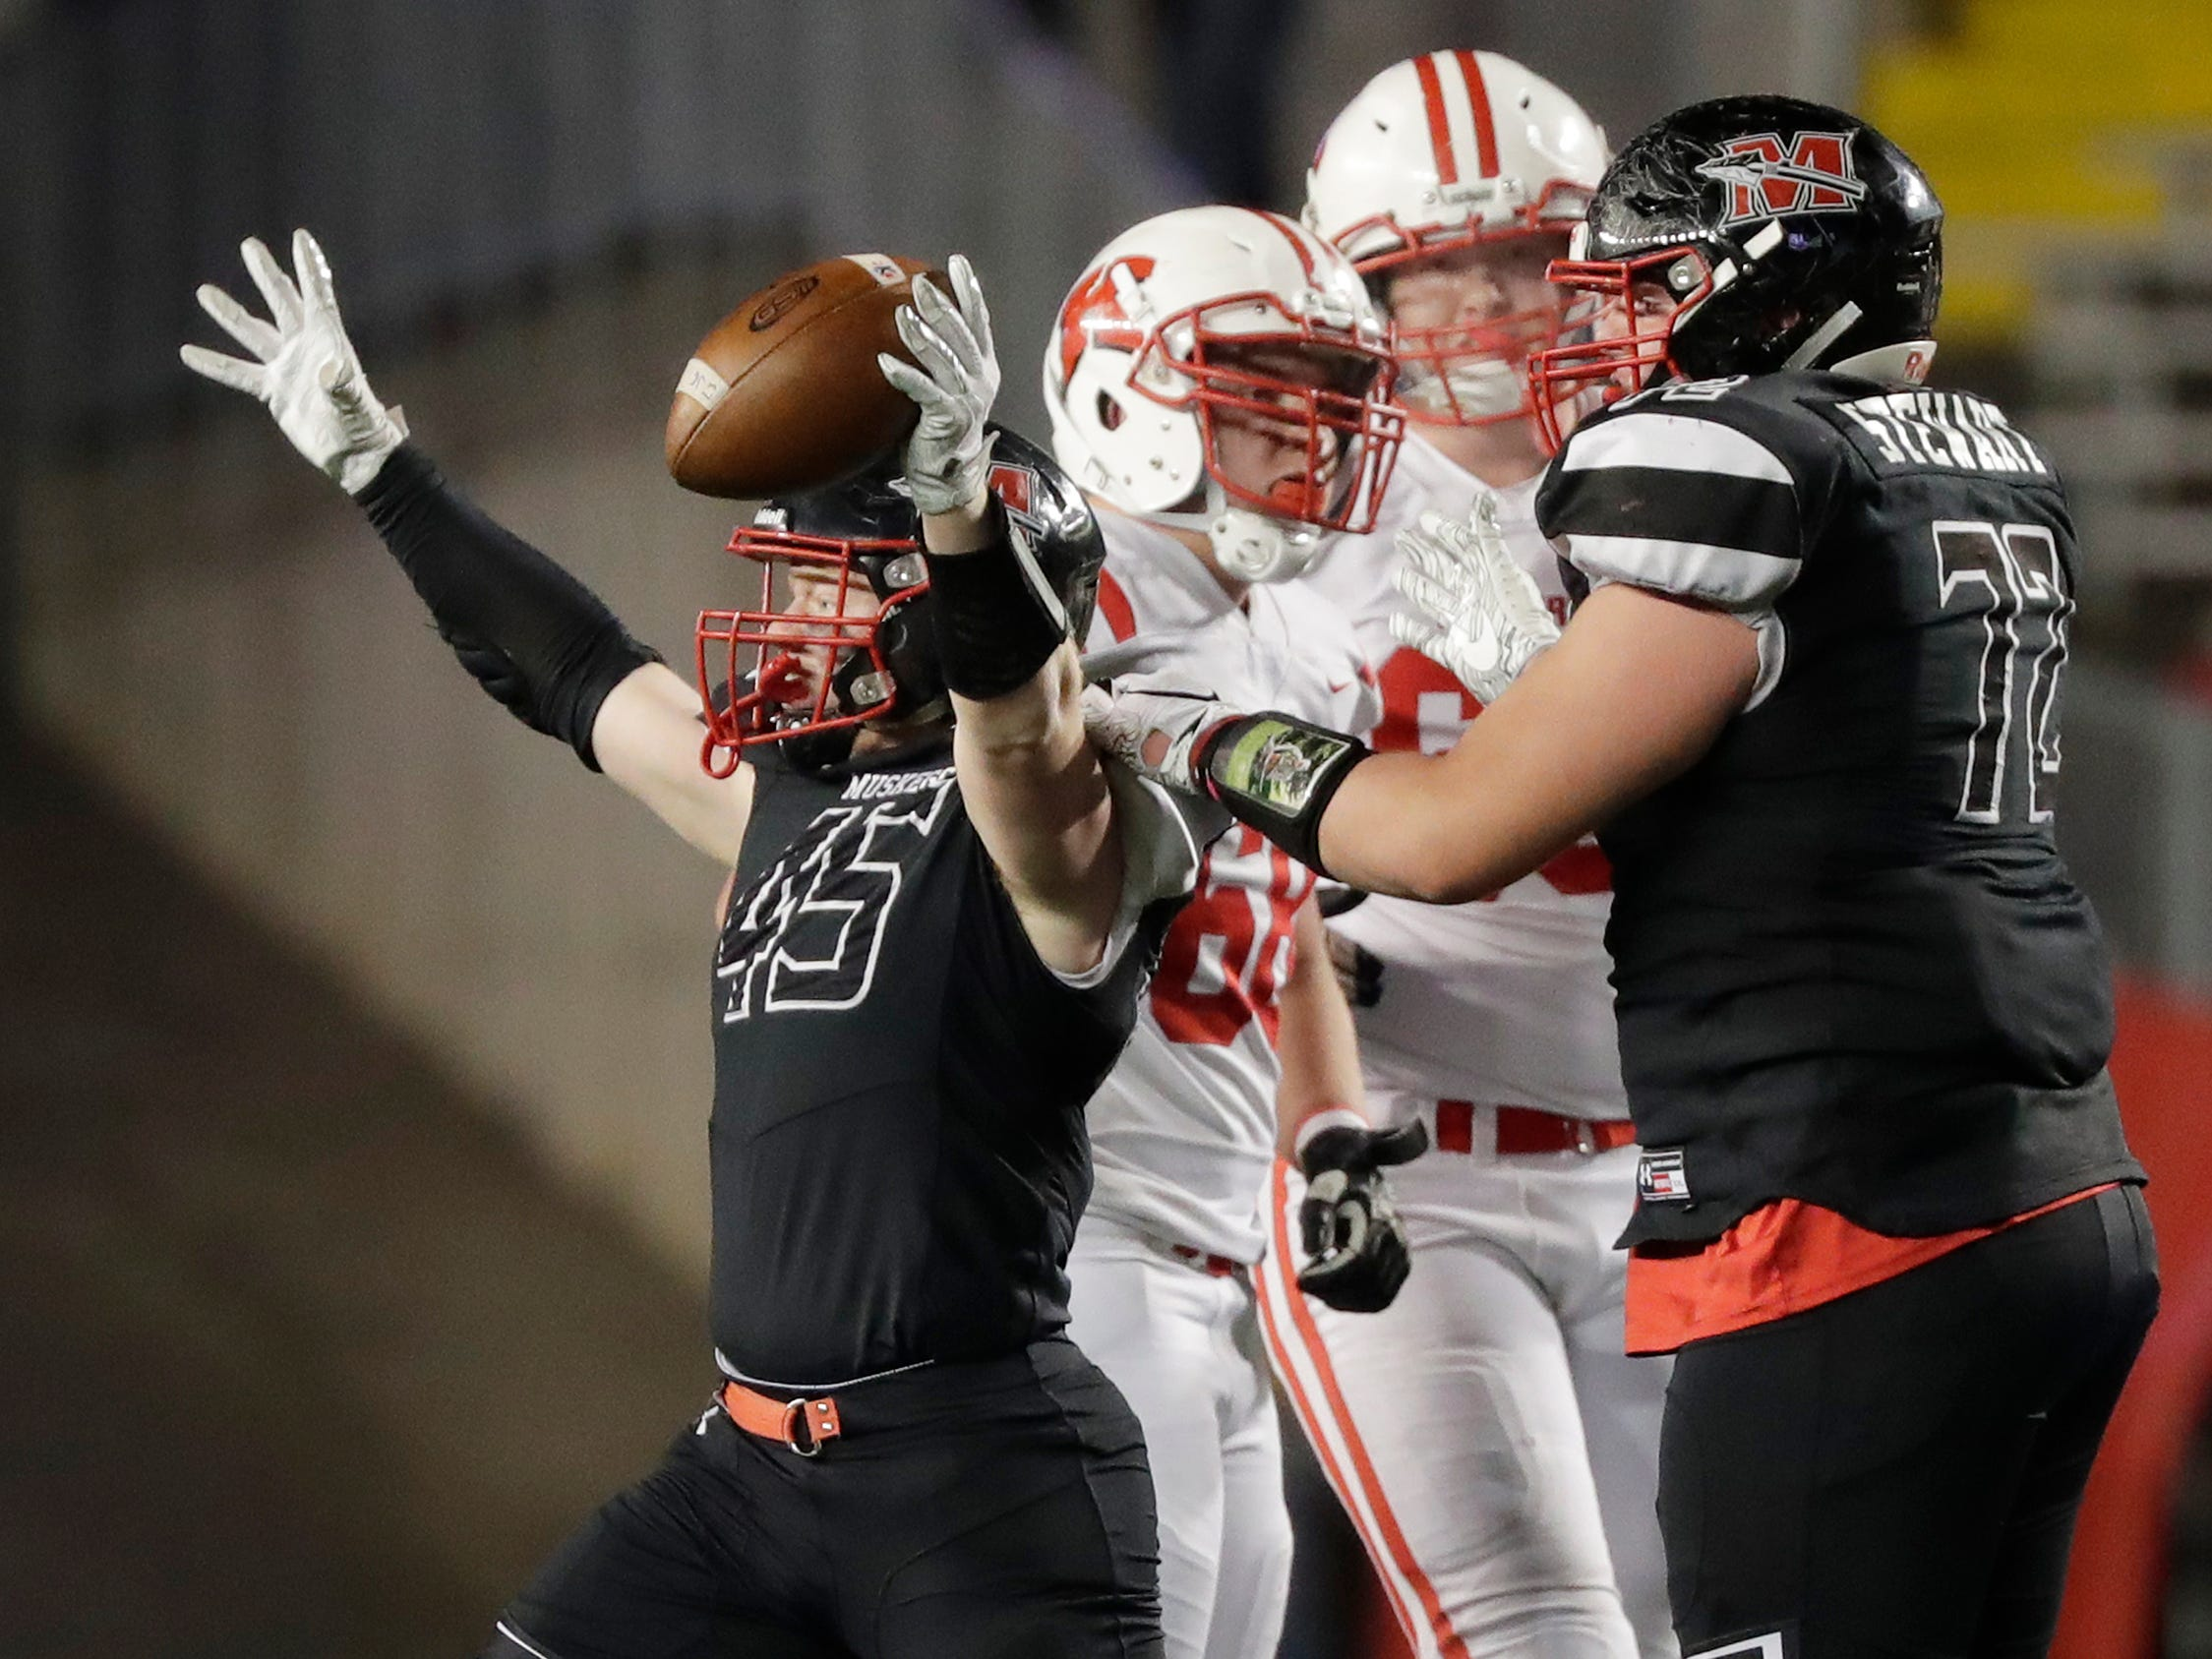 Muskego's Mitch Borkovec (45) reacts after an interception against Kimberly in the WIAA Division 1 championship game at Camp Randall Stadium on Friday, November 16, 2018 in Madison, Wis.